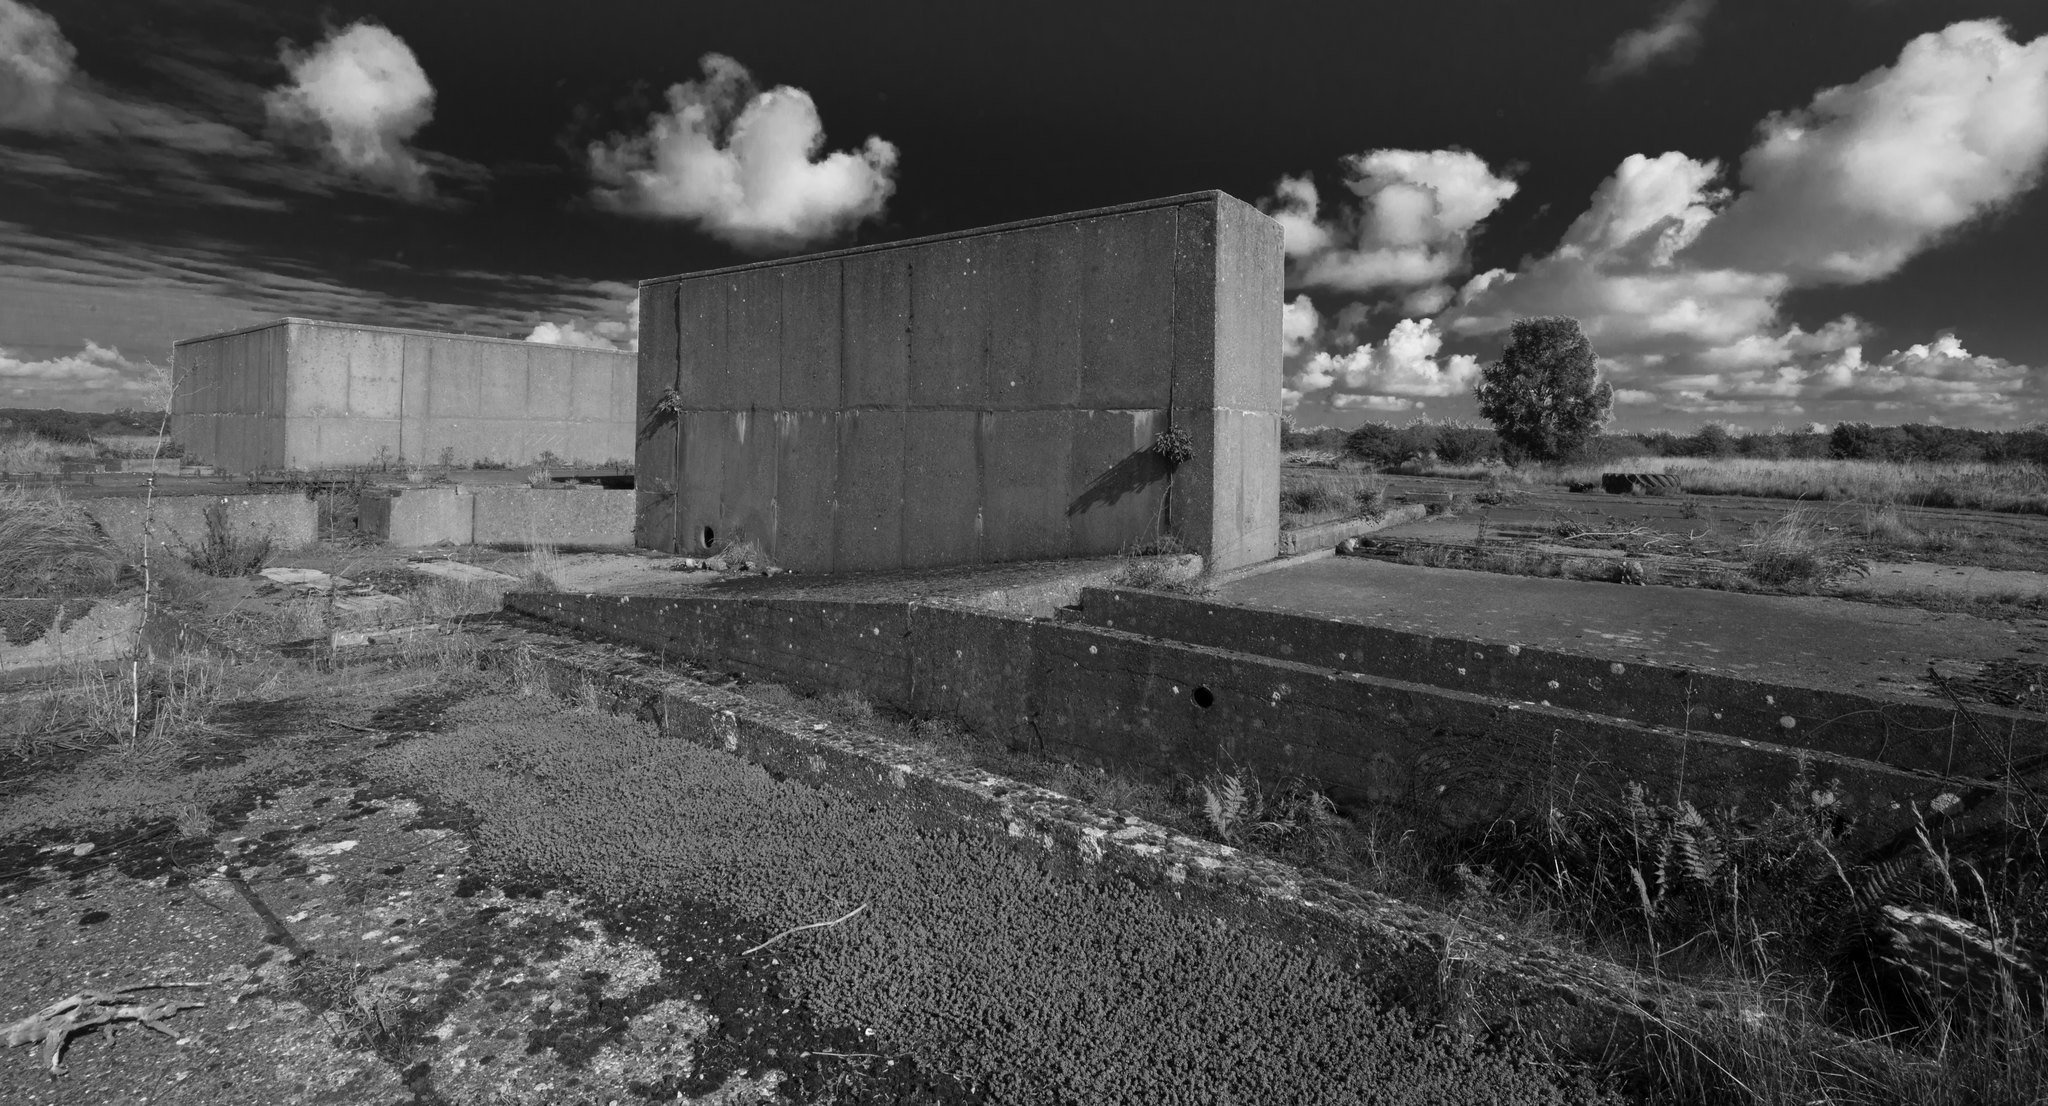 Cold War Bunker 2 | by Nicholls of the Yard